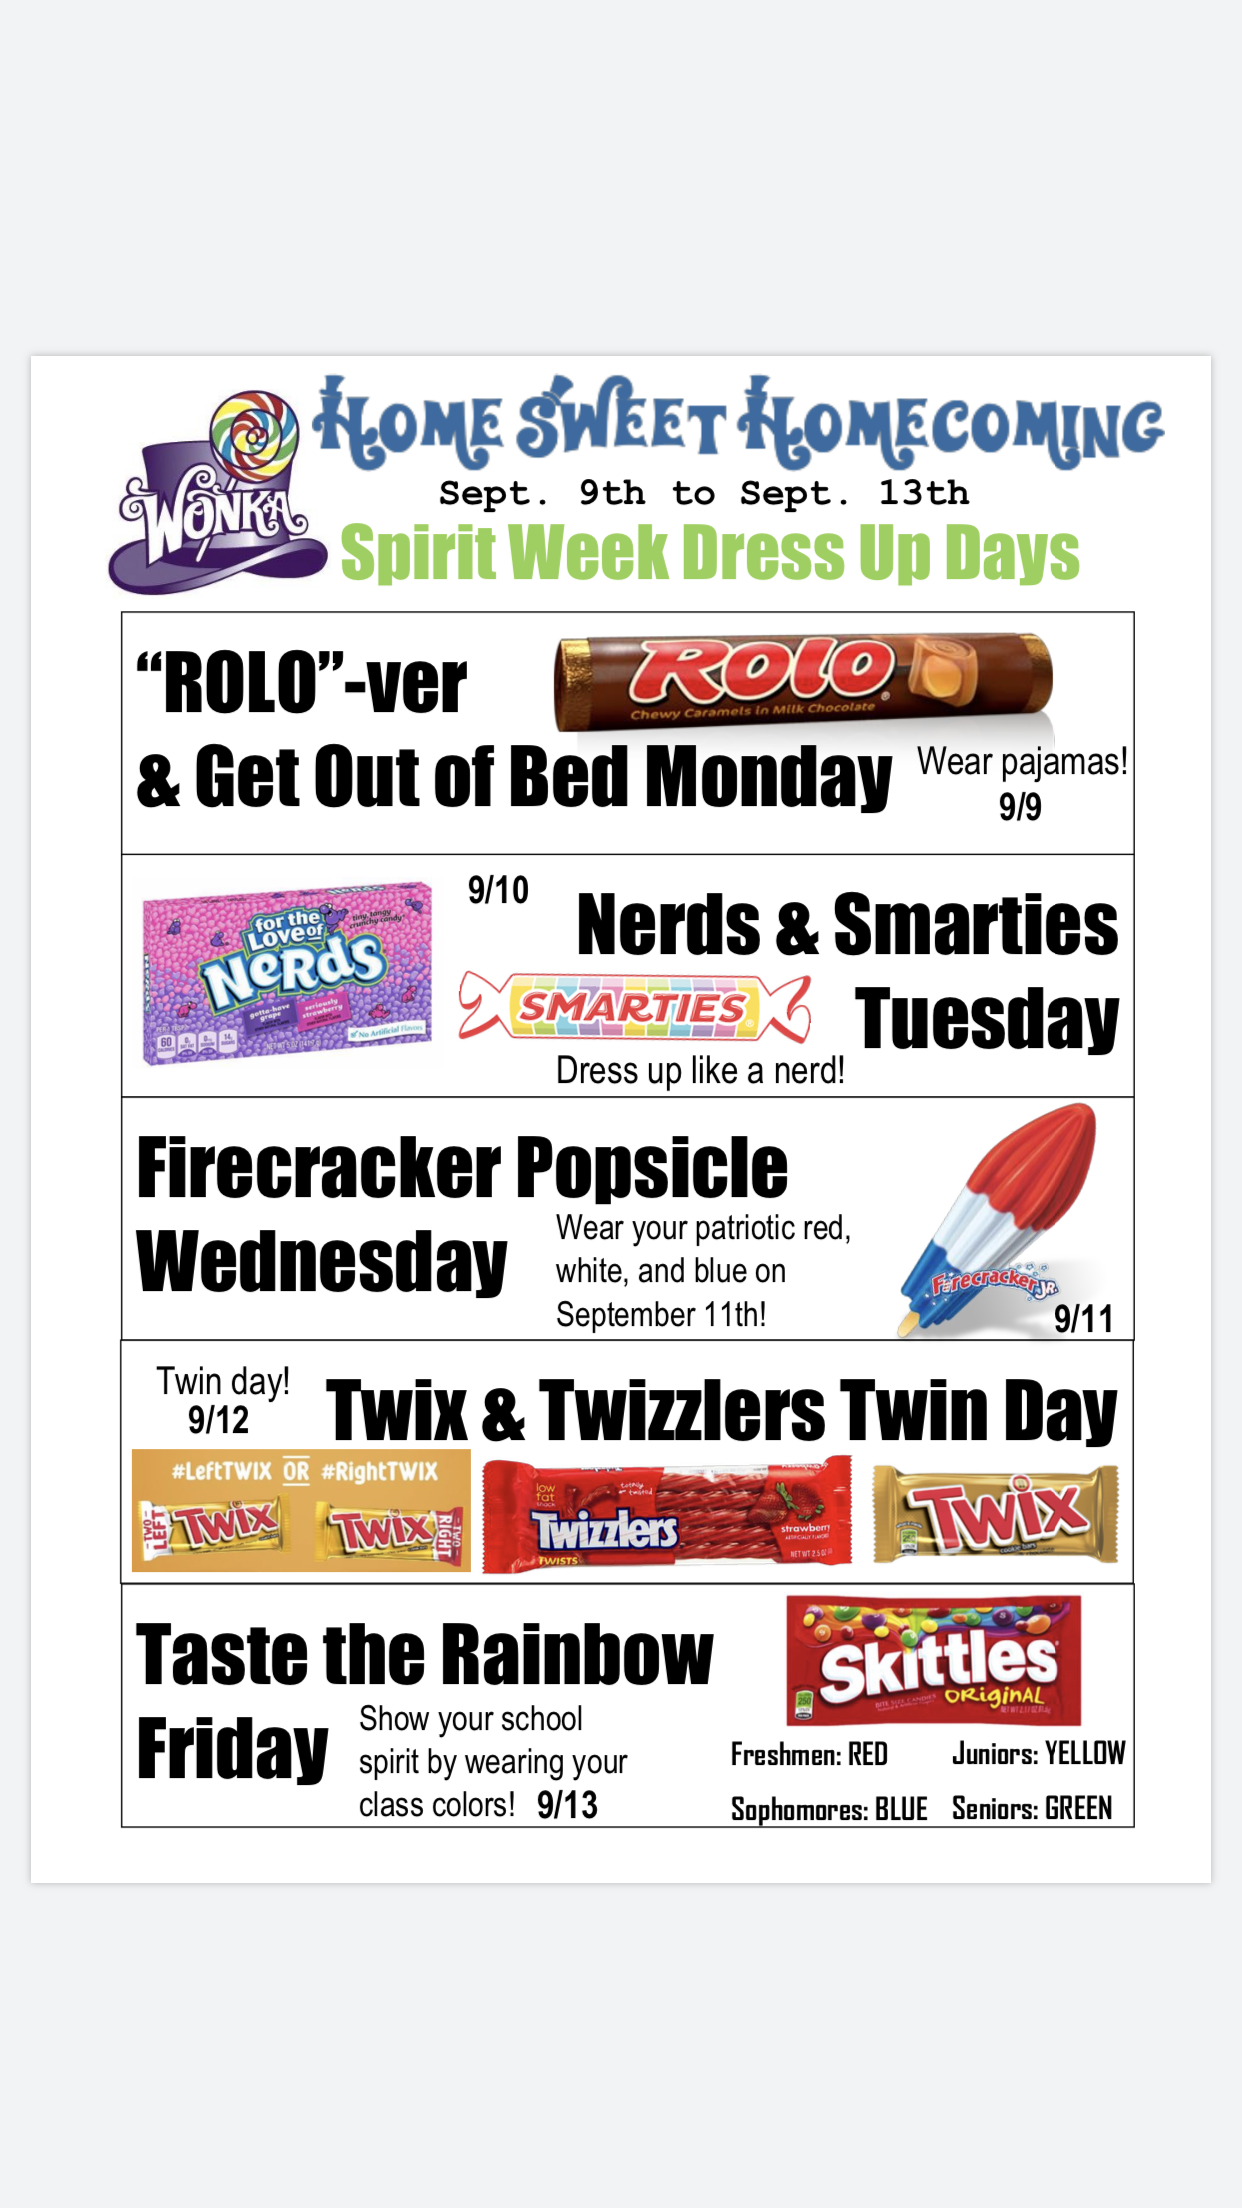 Home Sweet Homecoming Dress Up Days School Spirit Week School Spirit Days Homecoming Spirit Week